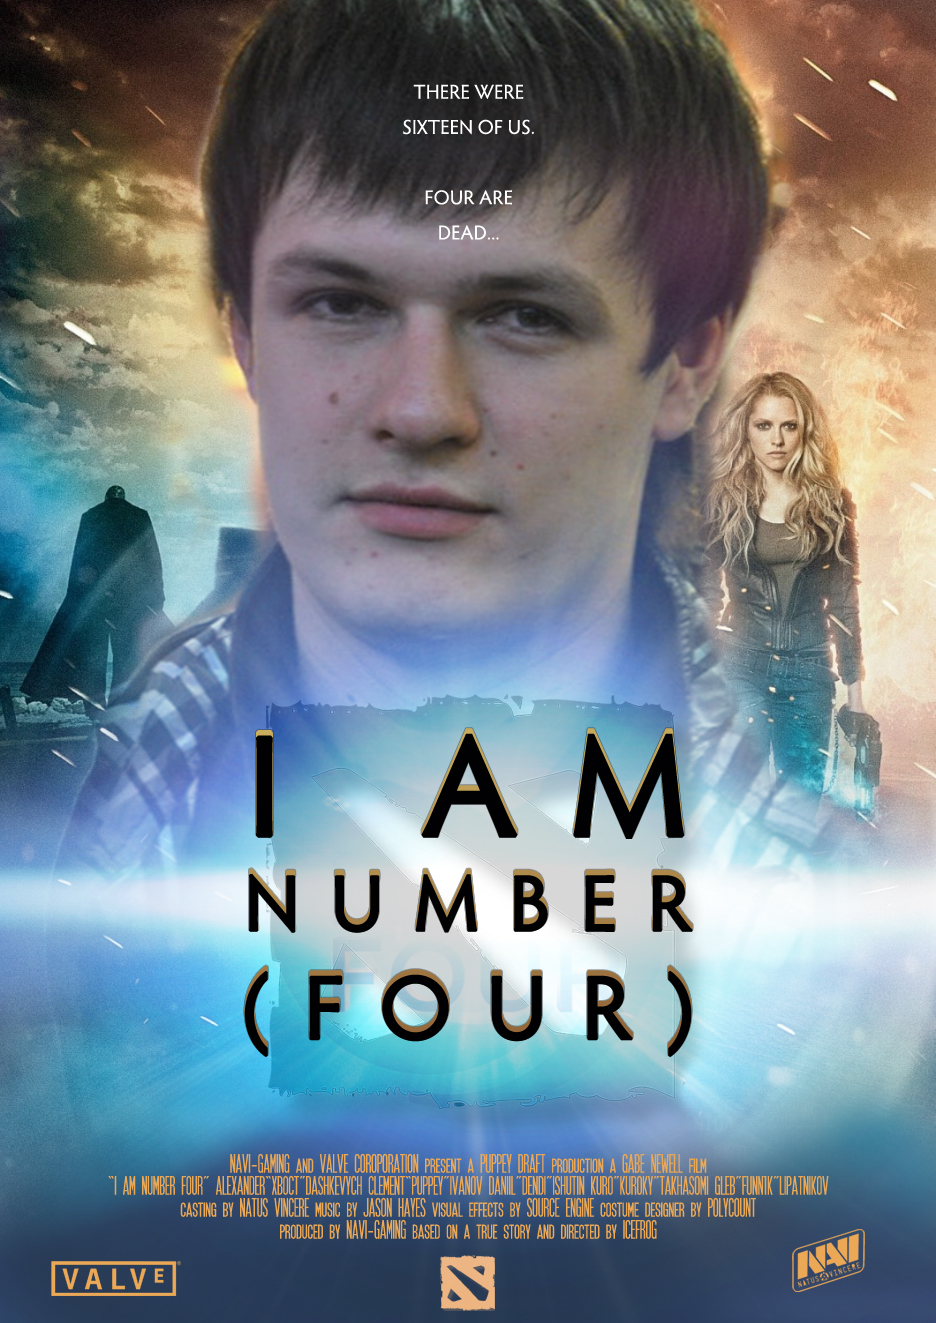 I Am Number Four Interviews With Alex Pettyfer And Dianna Agron